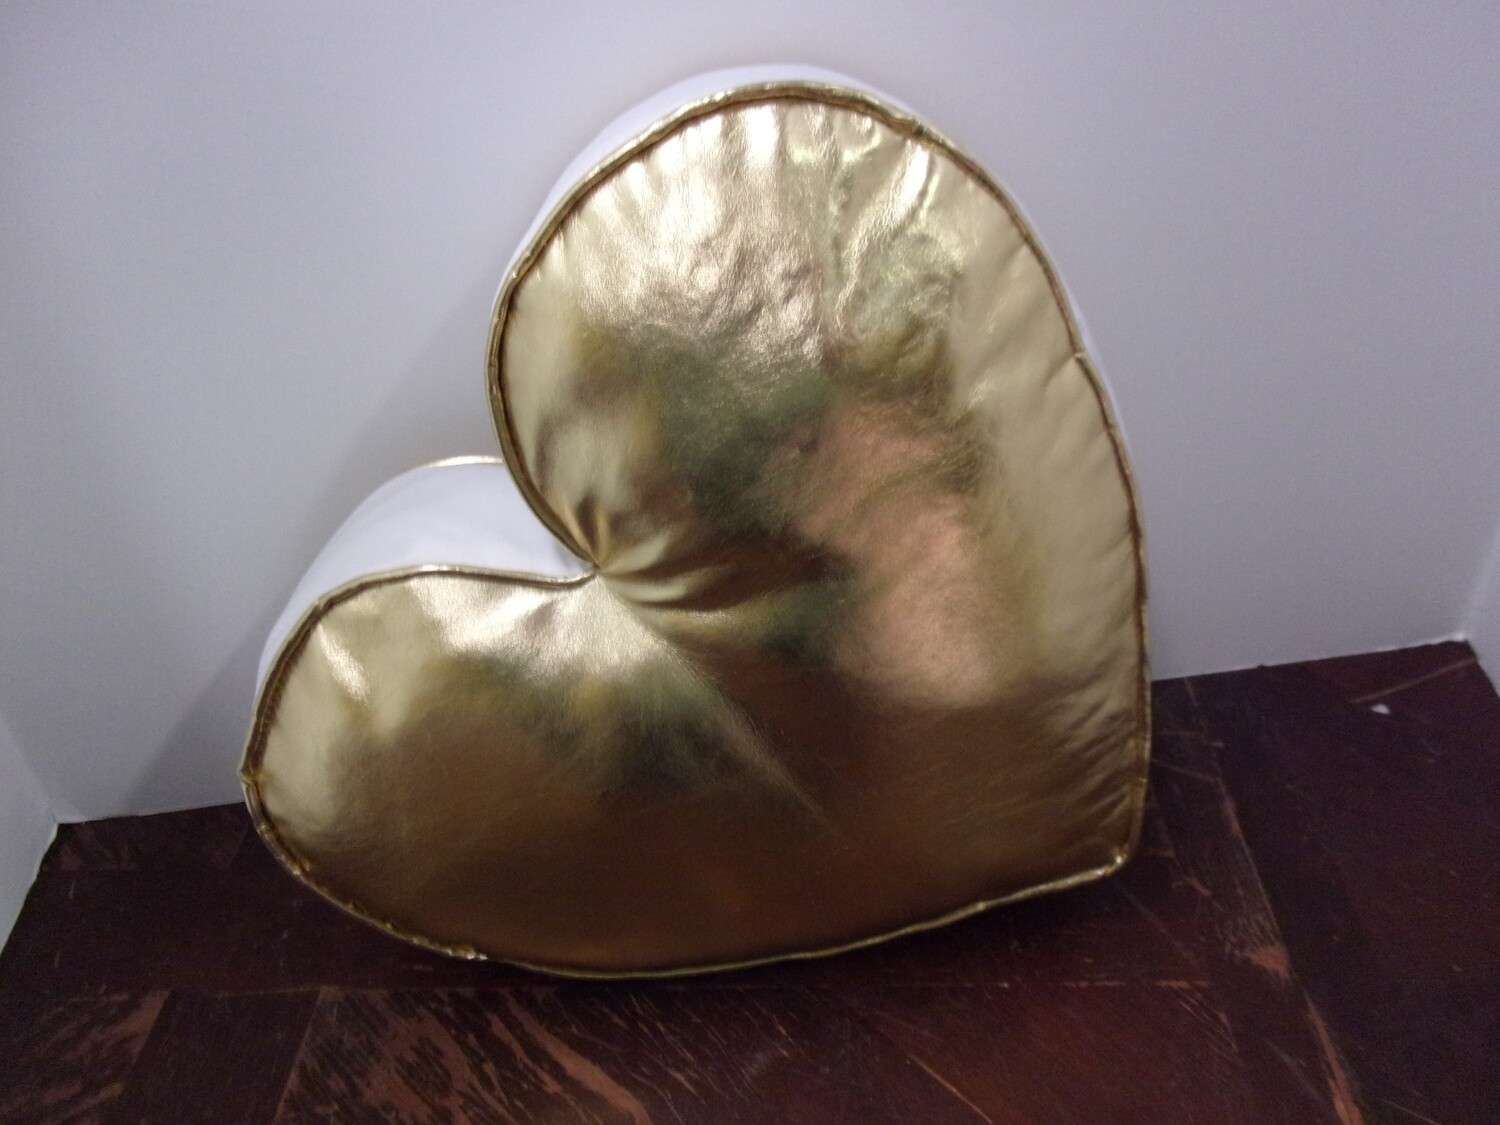 Shiny Gold Heart Shaped Pillow